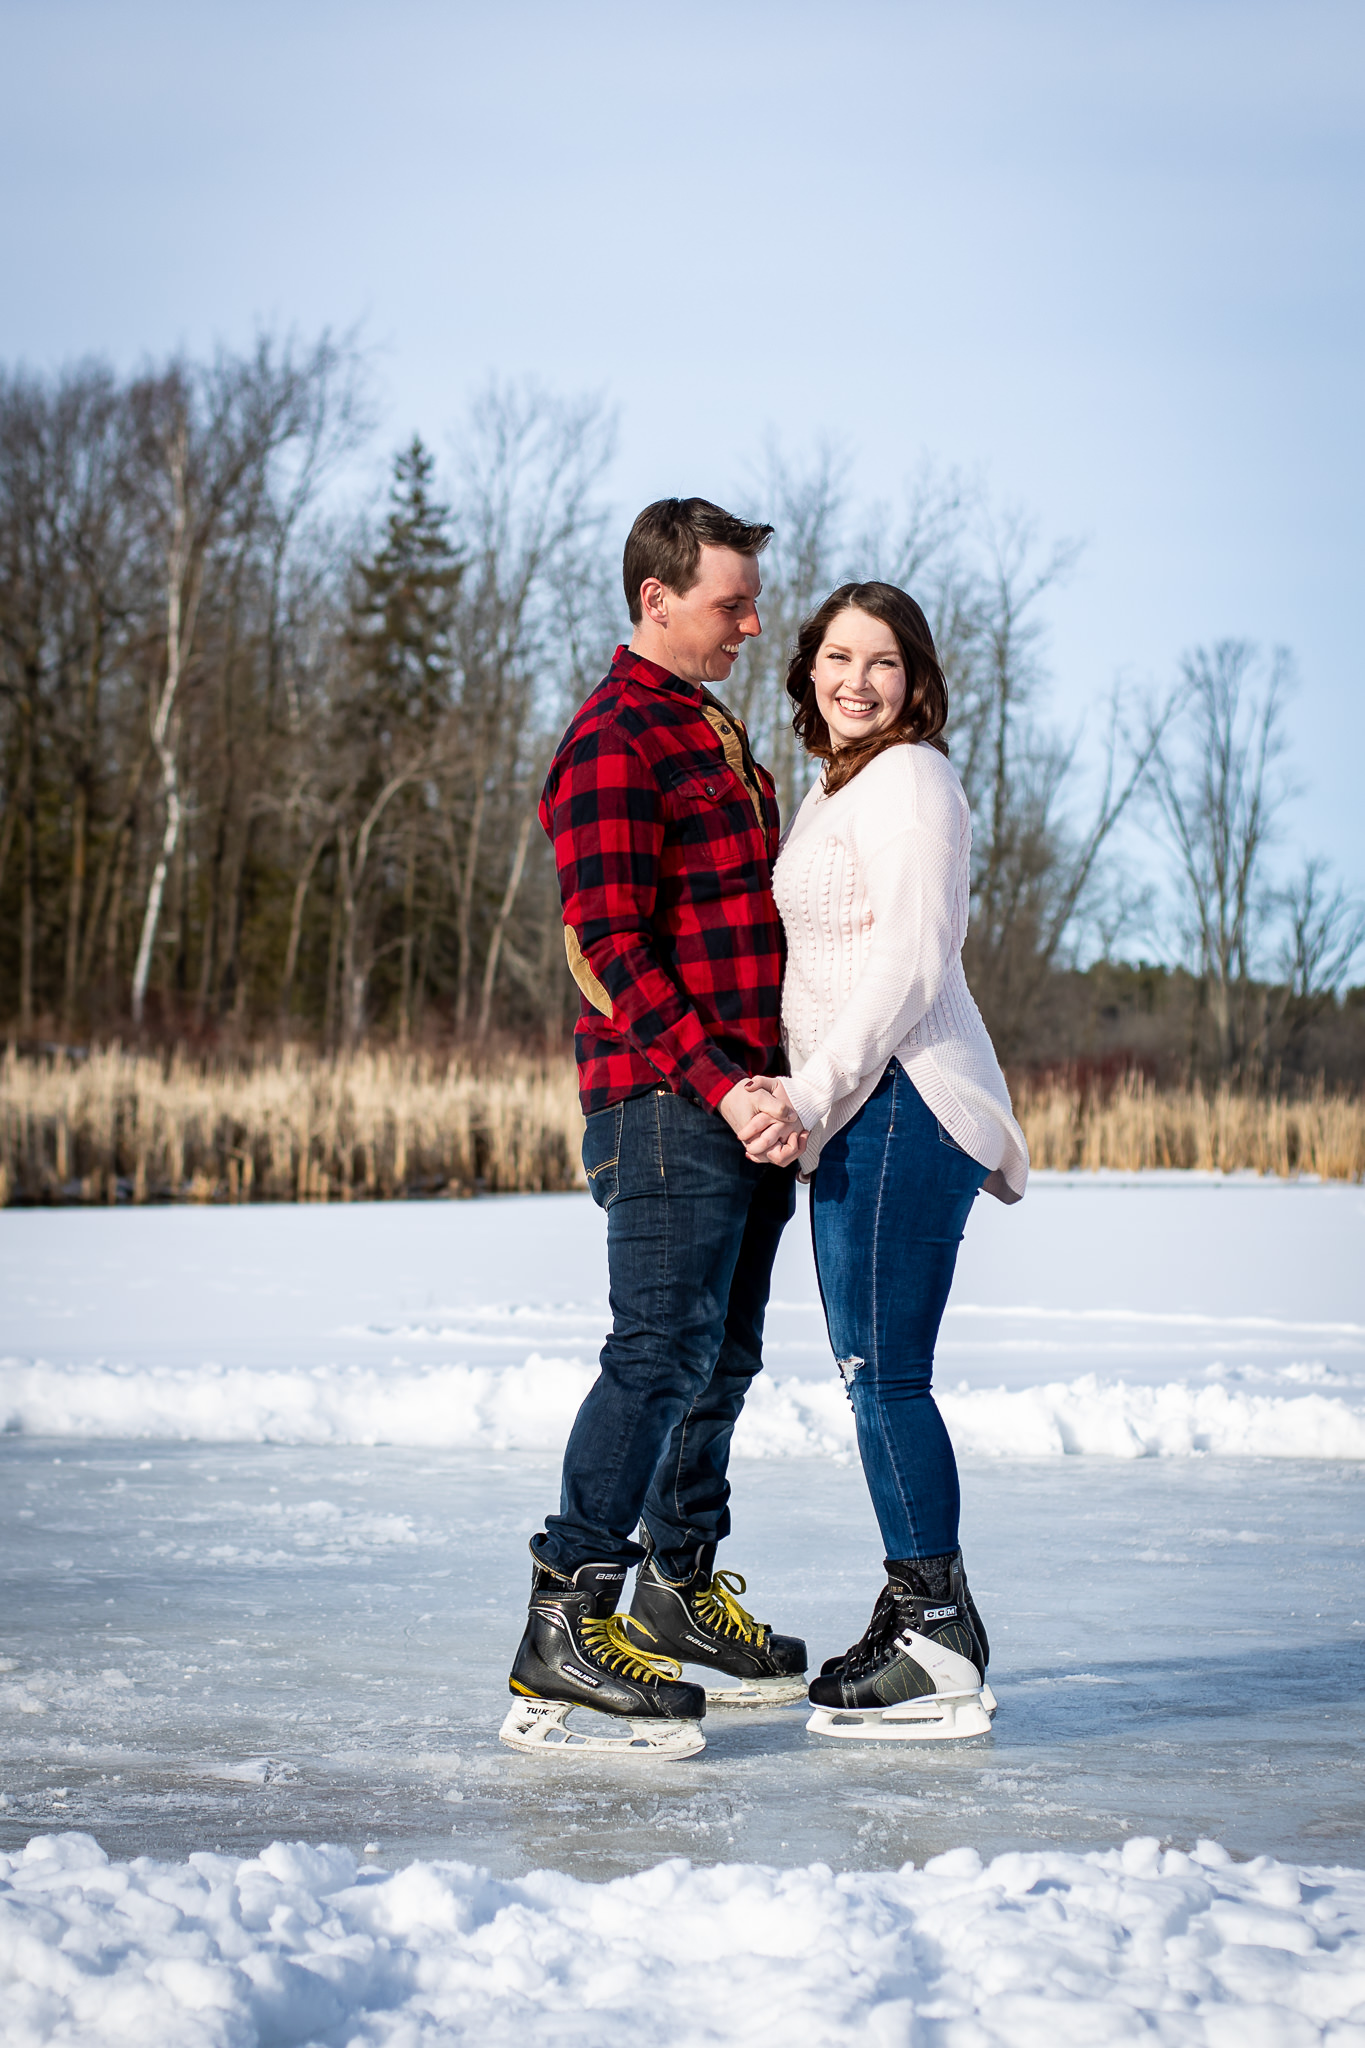 ice-skating-hockey-engagement-photos-6.jpg